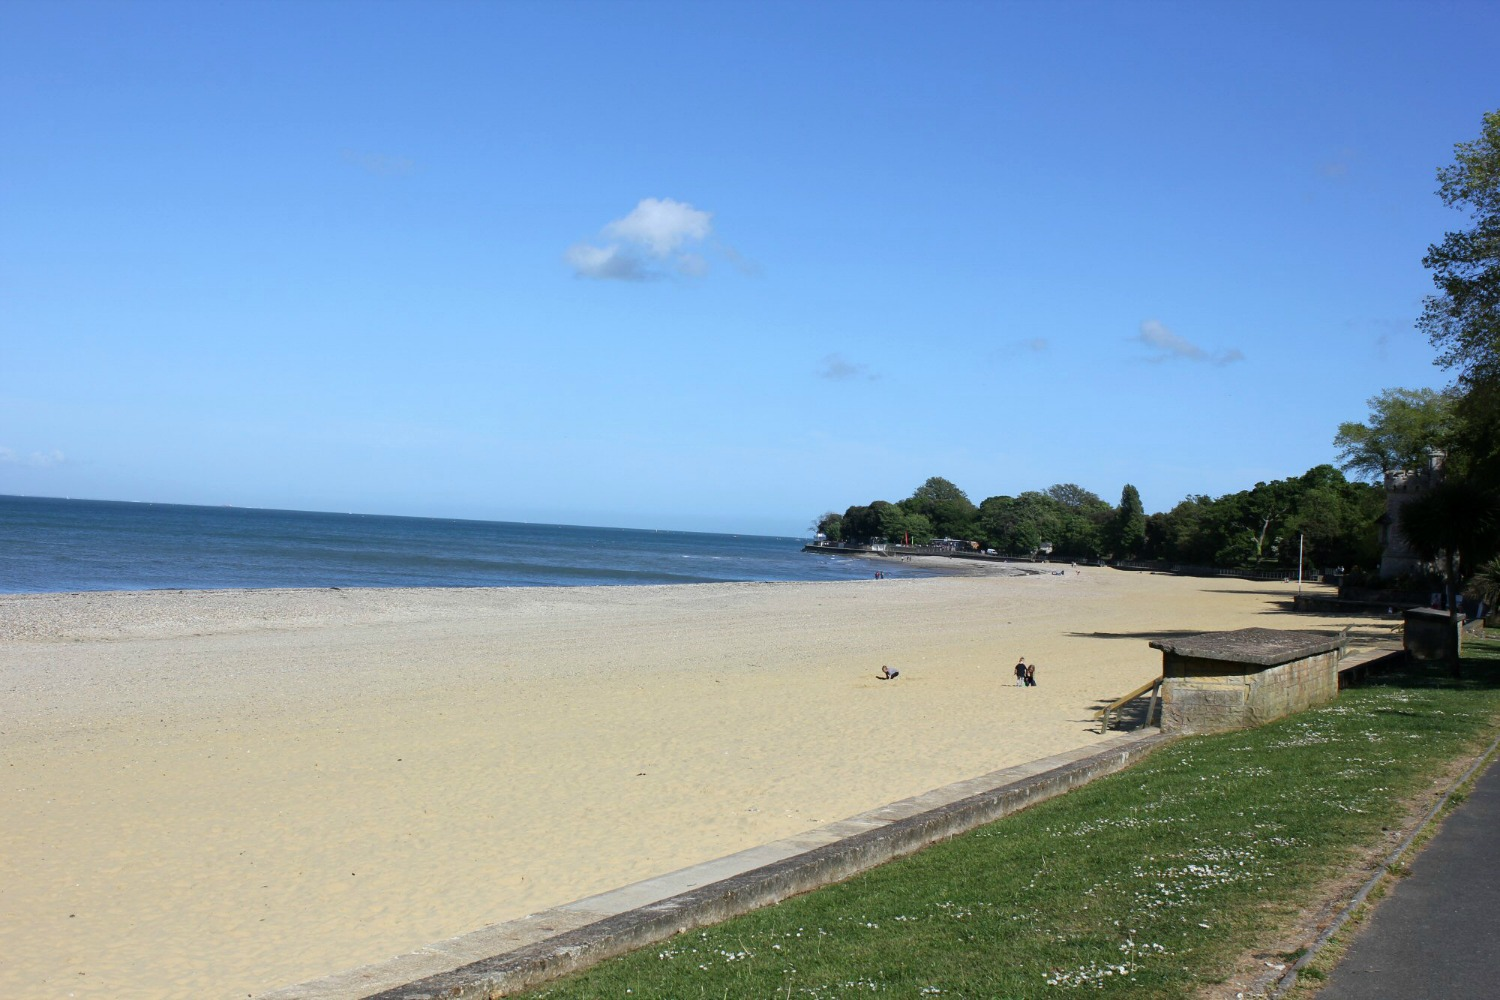 A view of the beach at Appley near Ryde - discovering the Isle of Wight coast